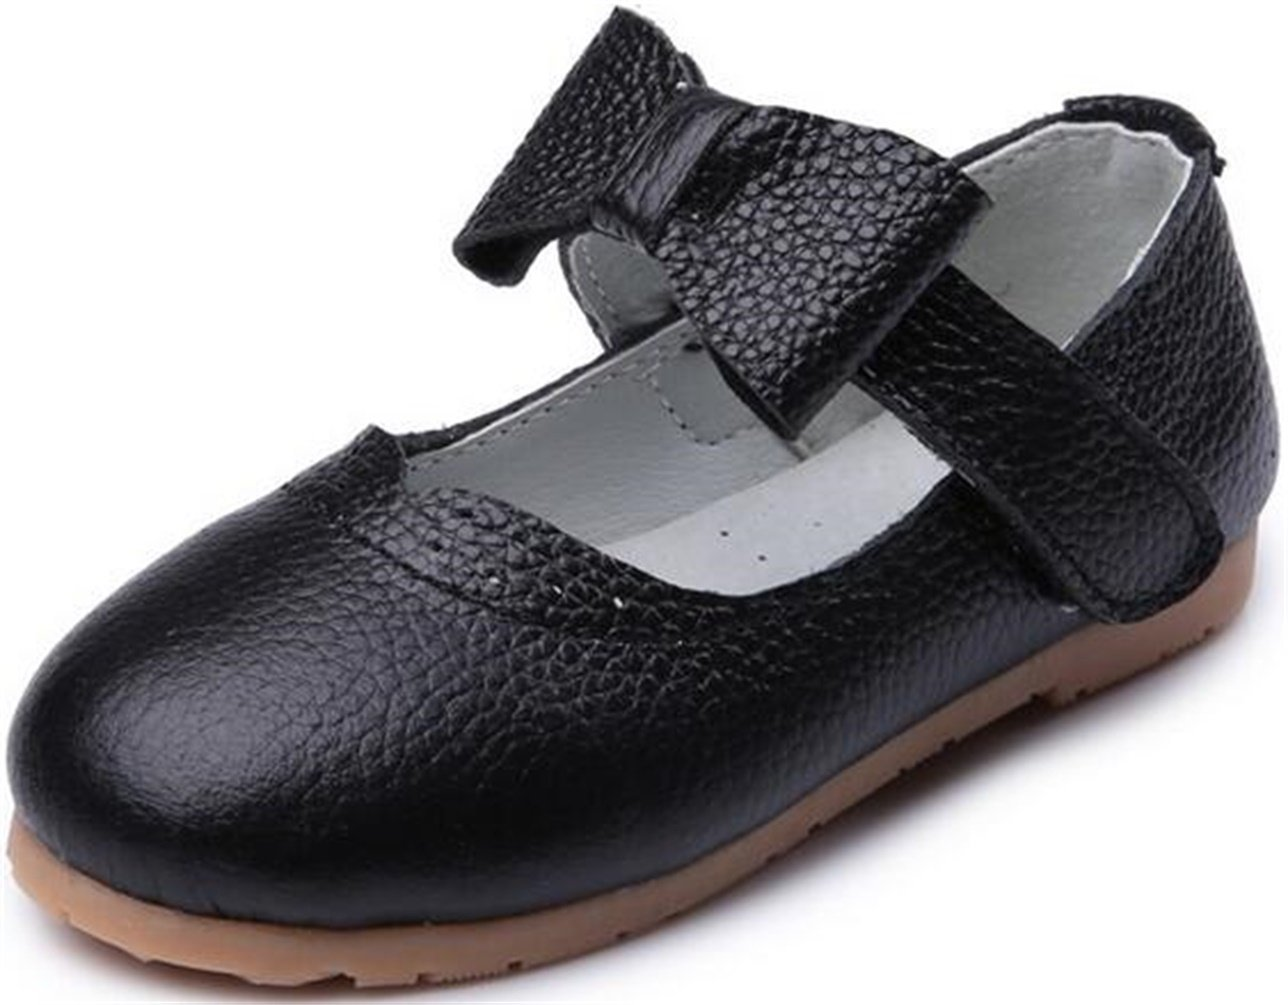 PPXID Girl's Bowknot Genuine Leather Ankle Strap Oxford Princess Shoes-Black 7 US size